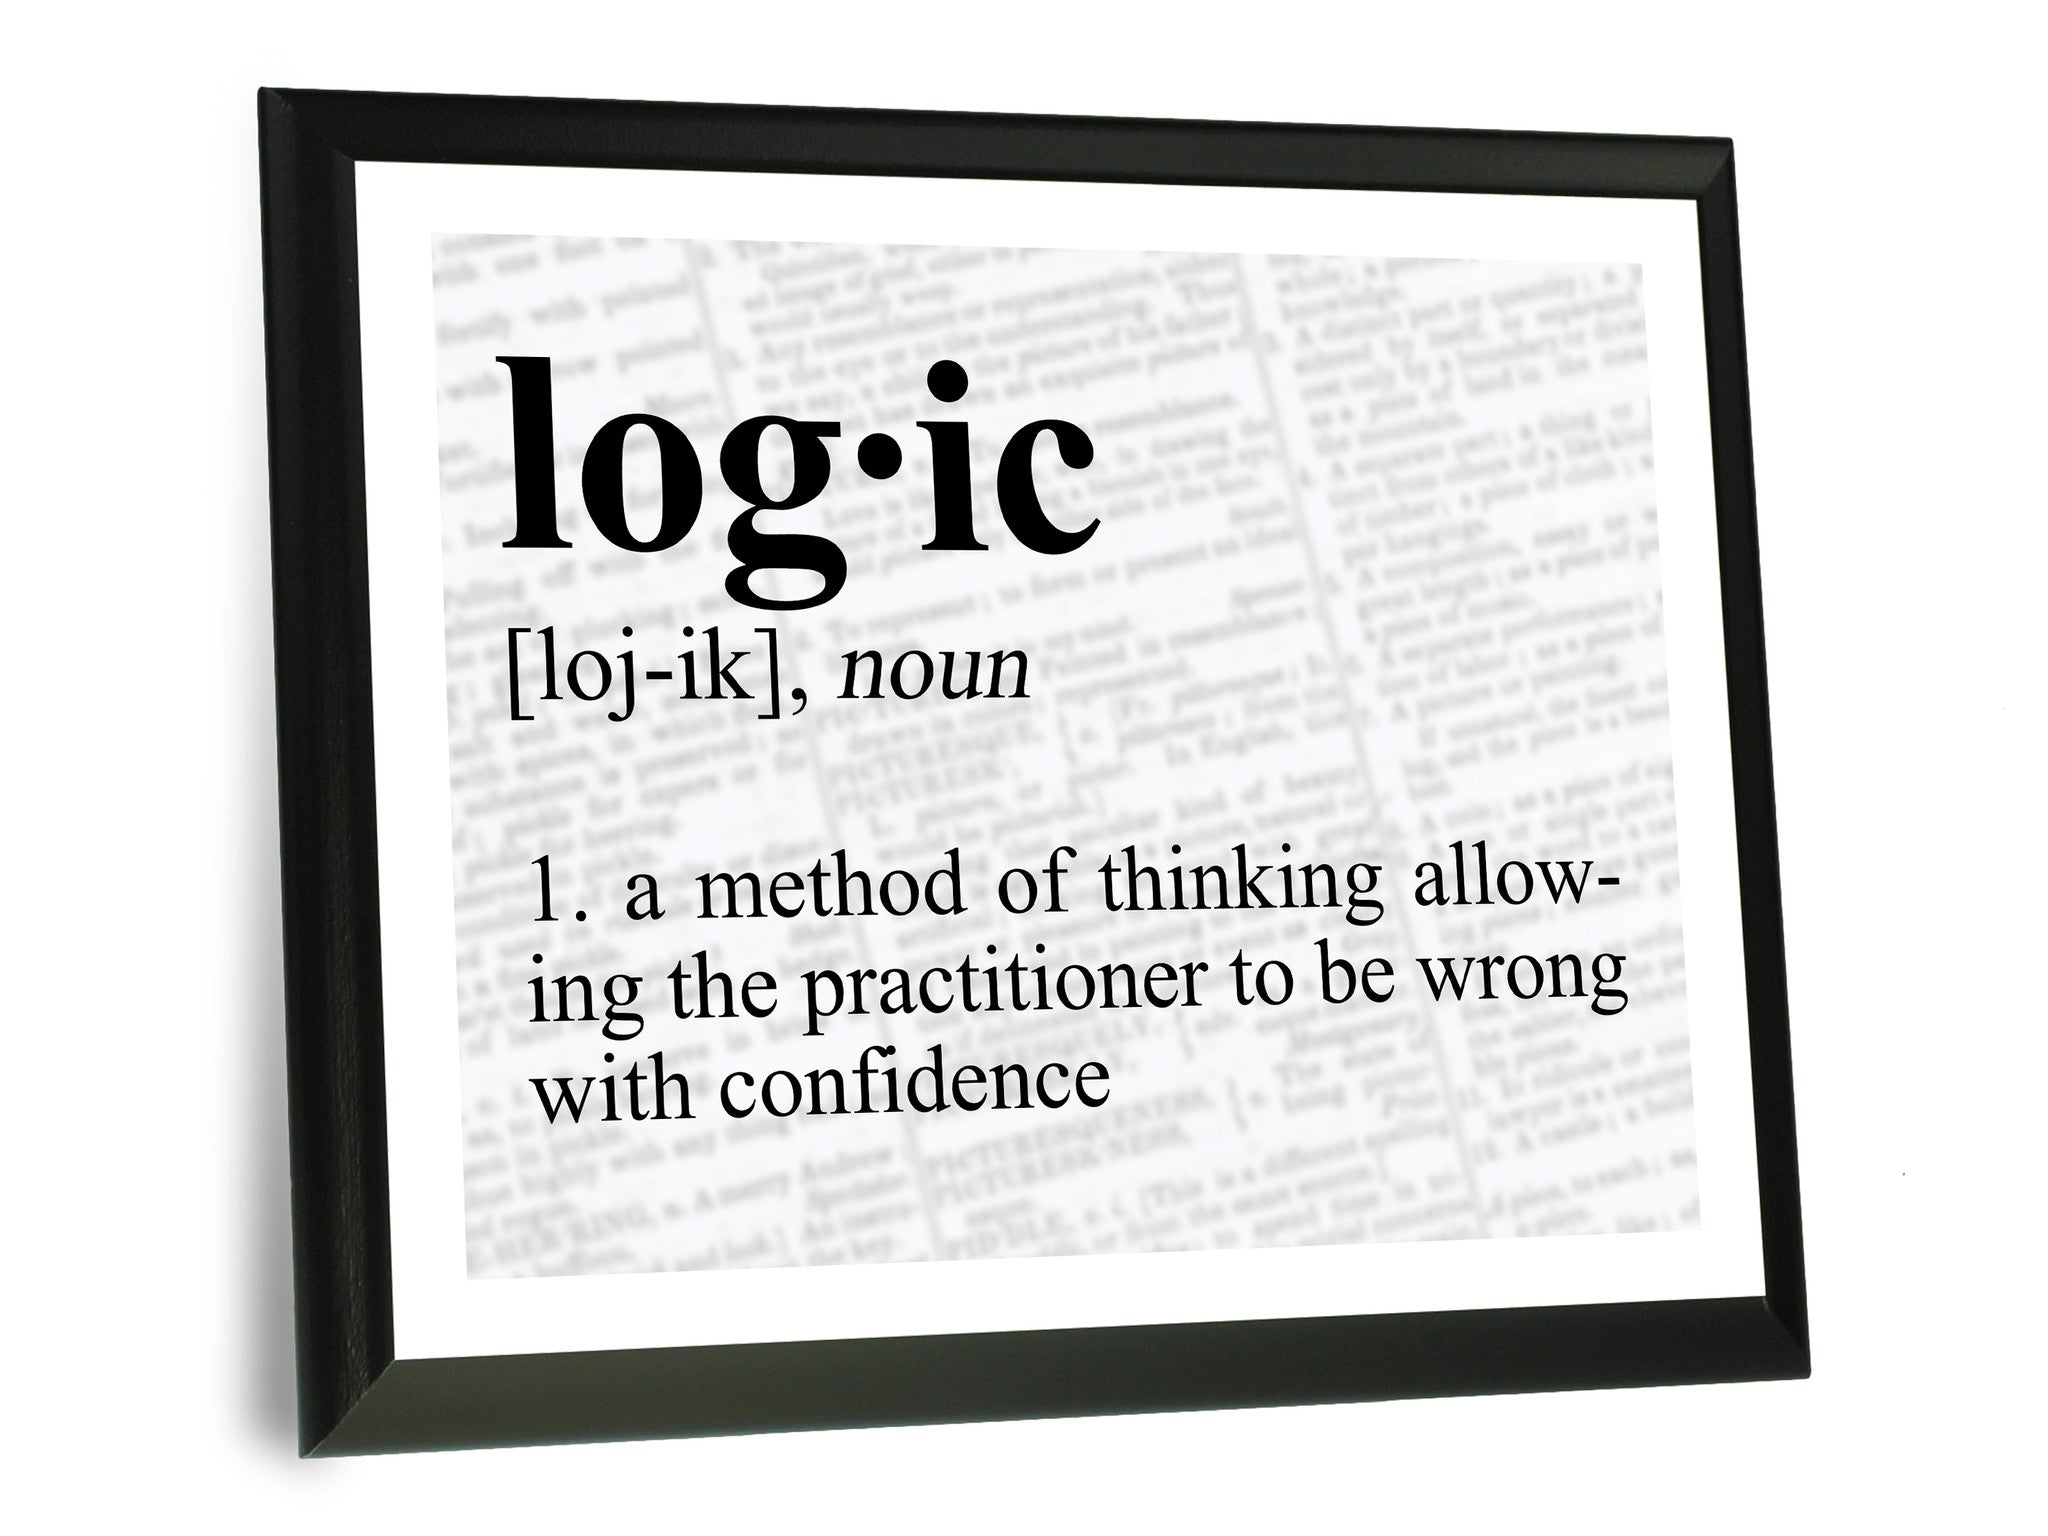 Logic definition typography wall plaque 9x12 for geeks - Plaque de finition ...